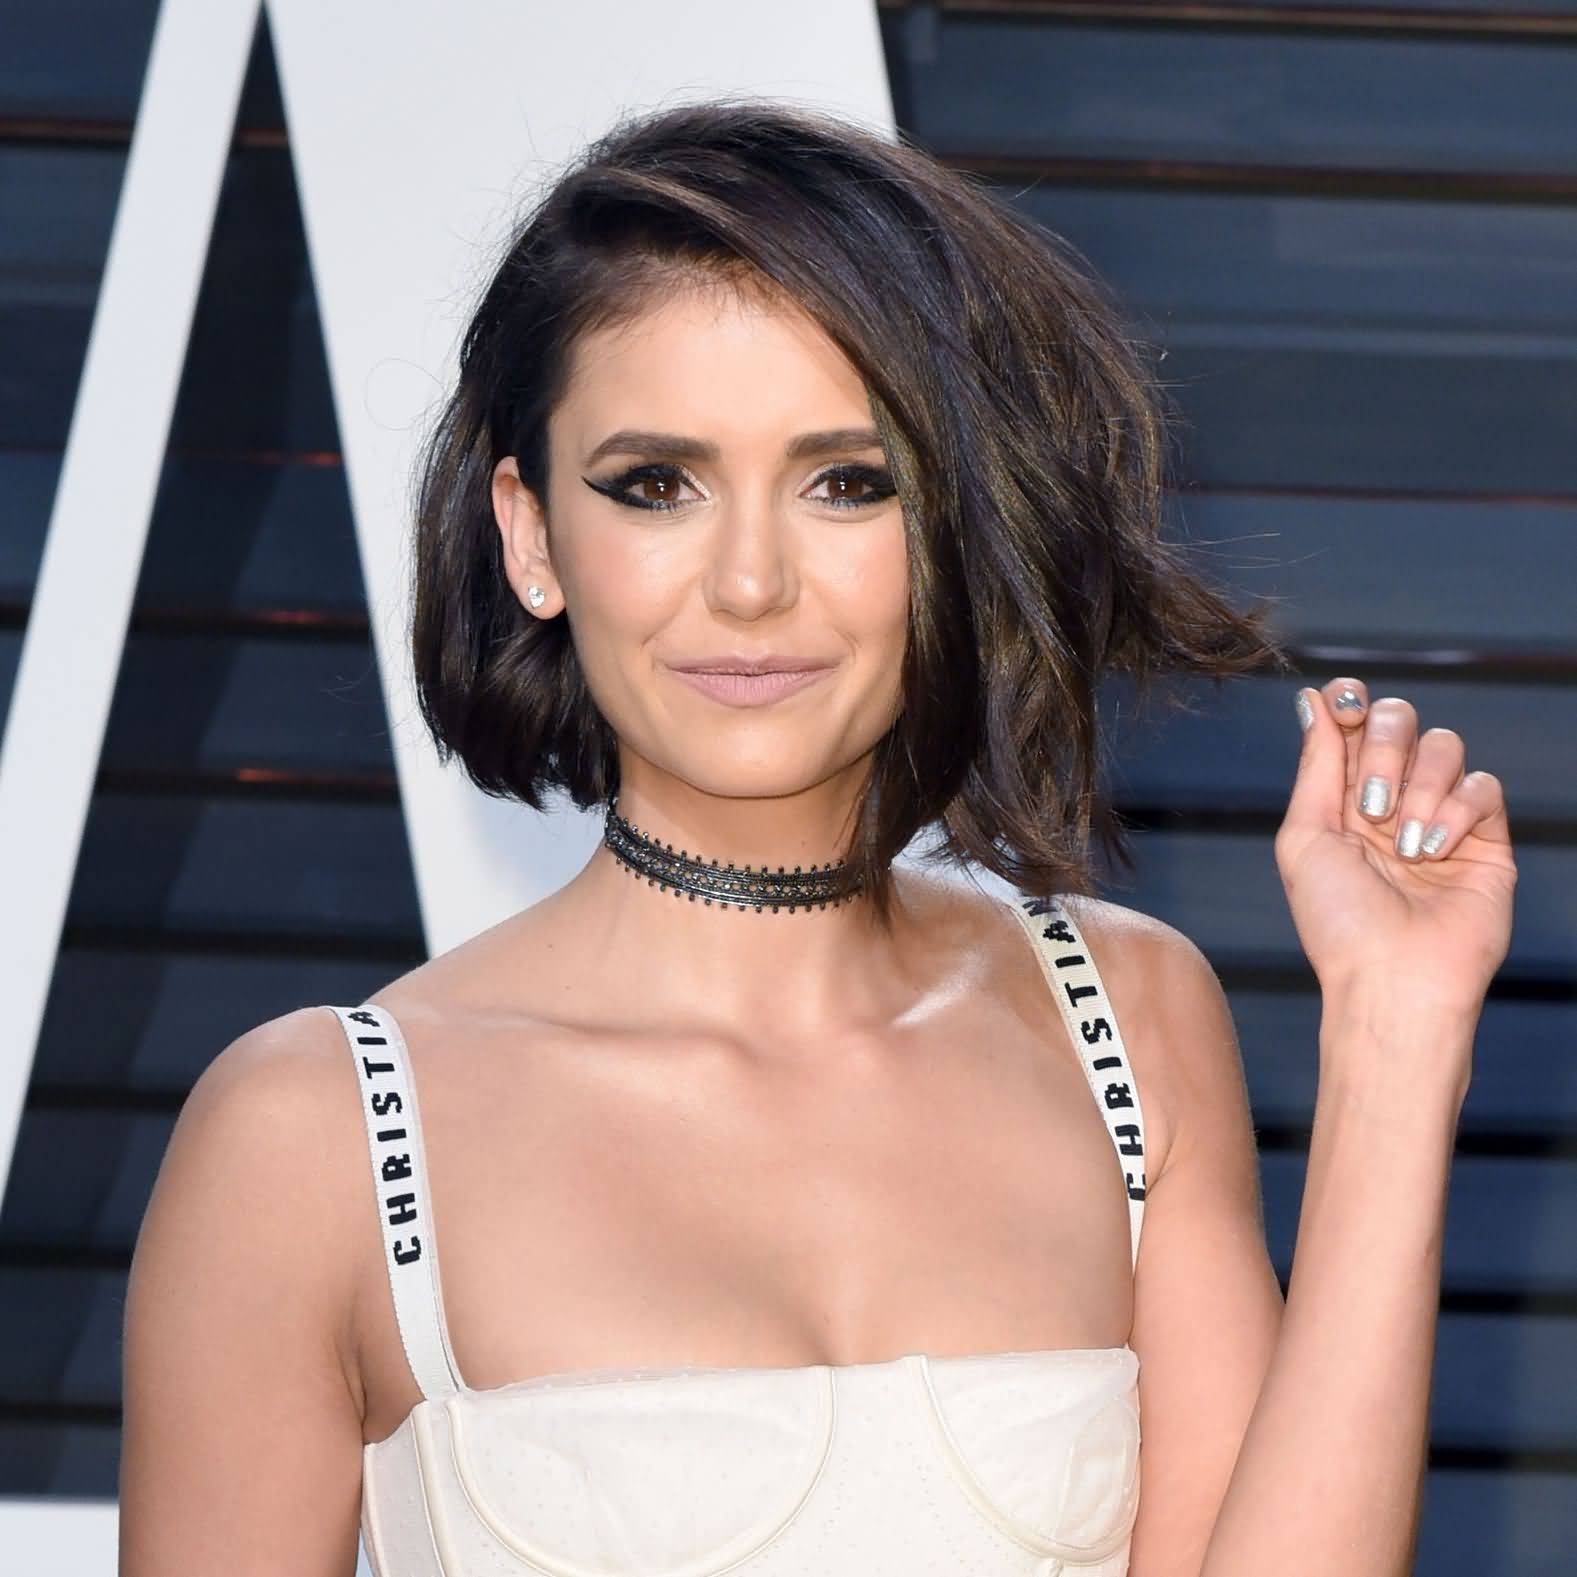 Trendy style for stylish look Short Hairstyle